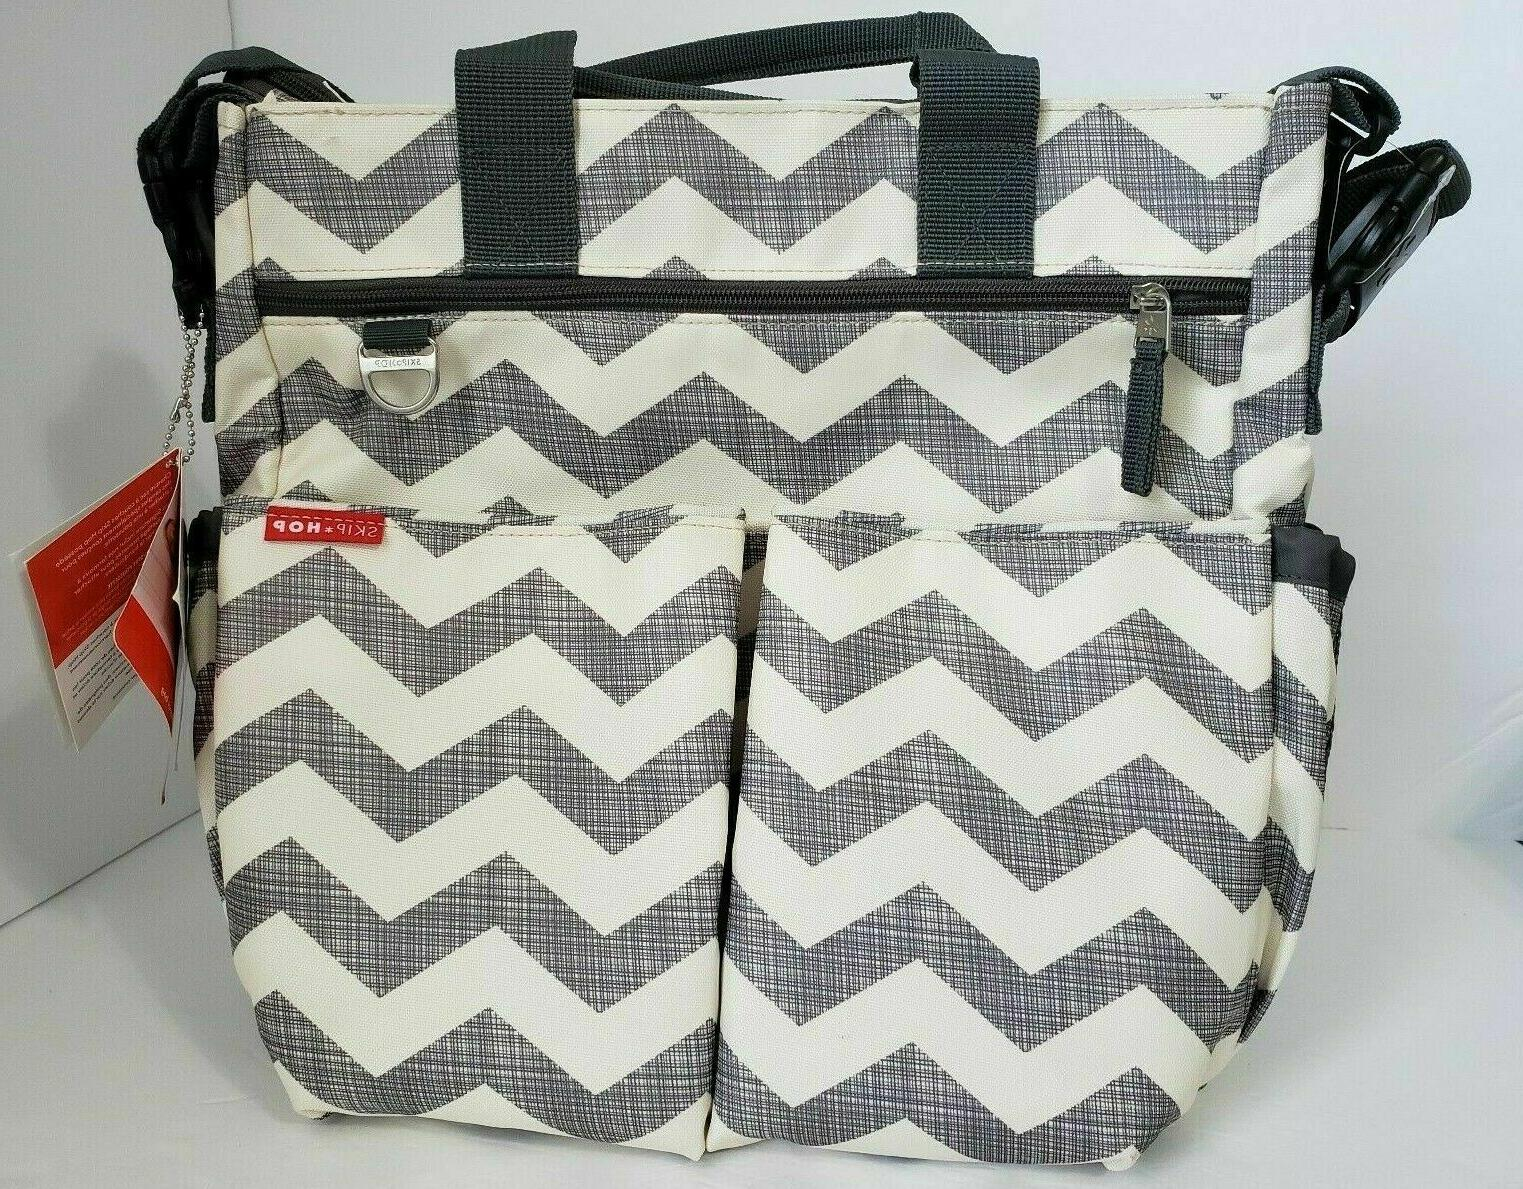 New Skip Hop Messenger Diaper Bag W/ Matching Changing Pad,